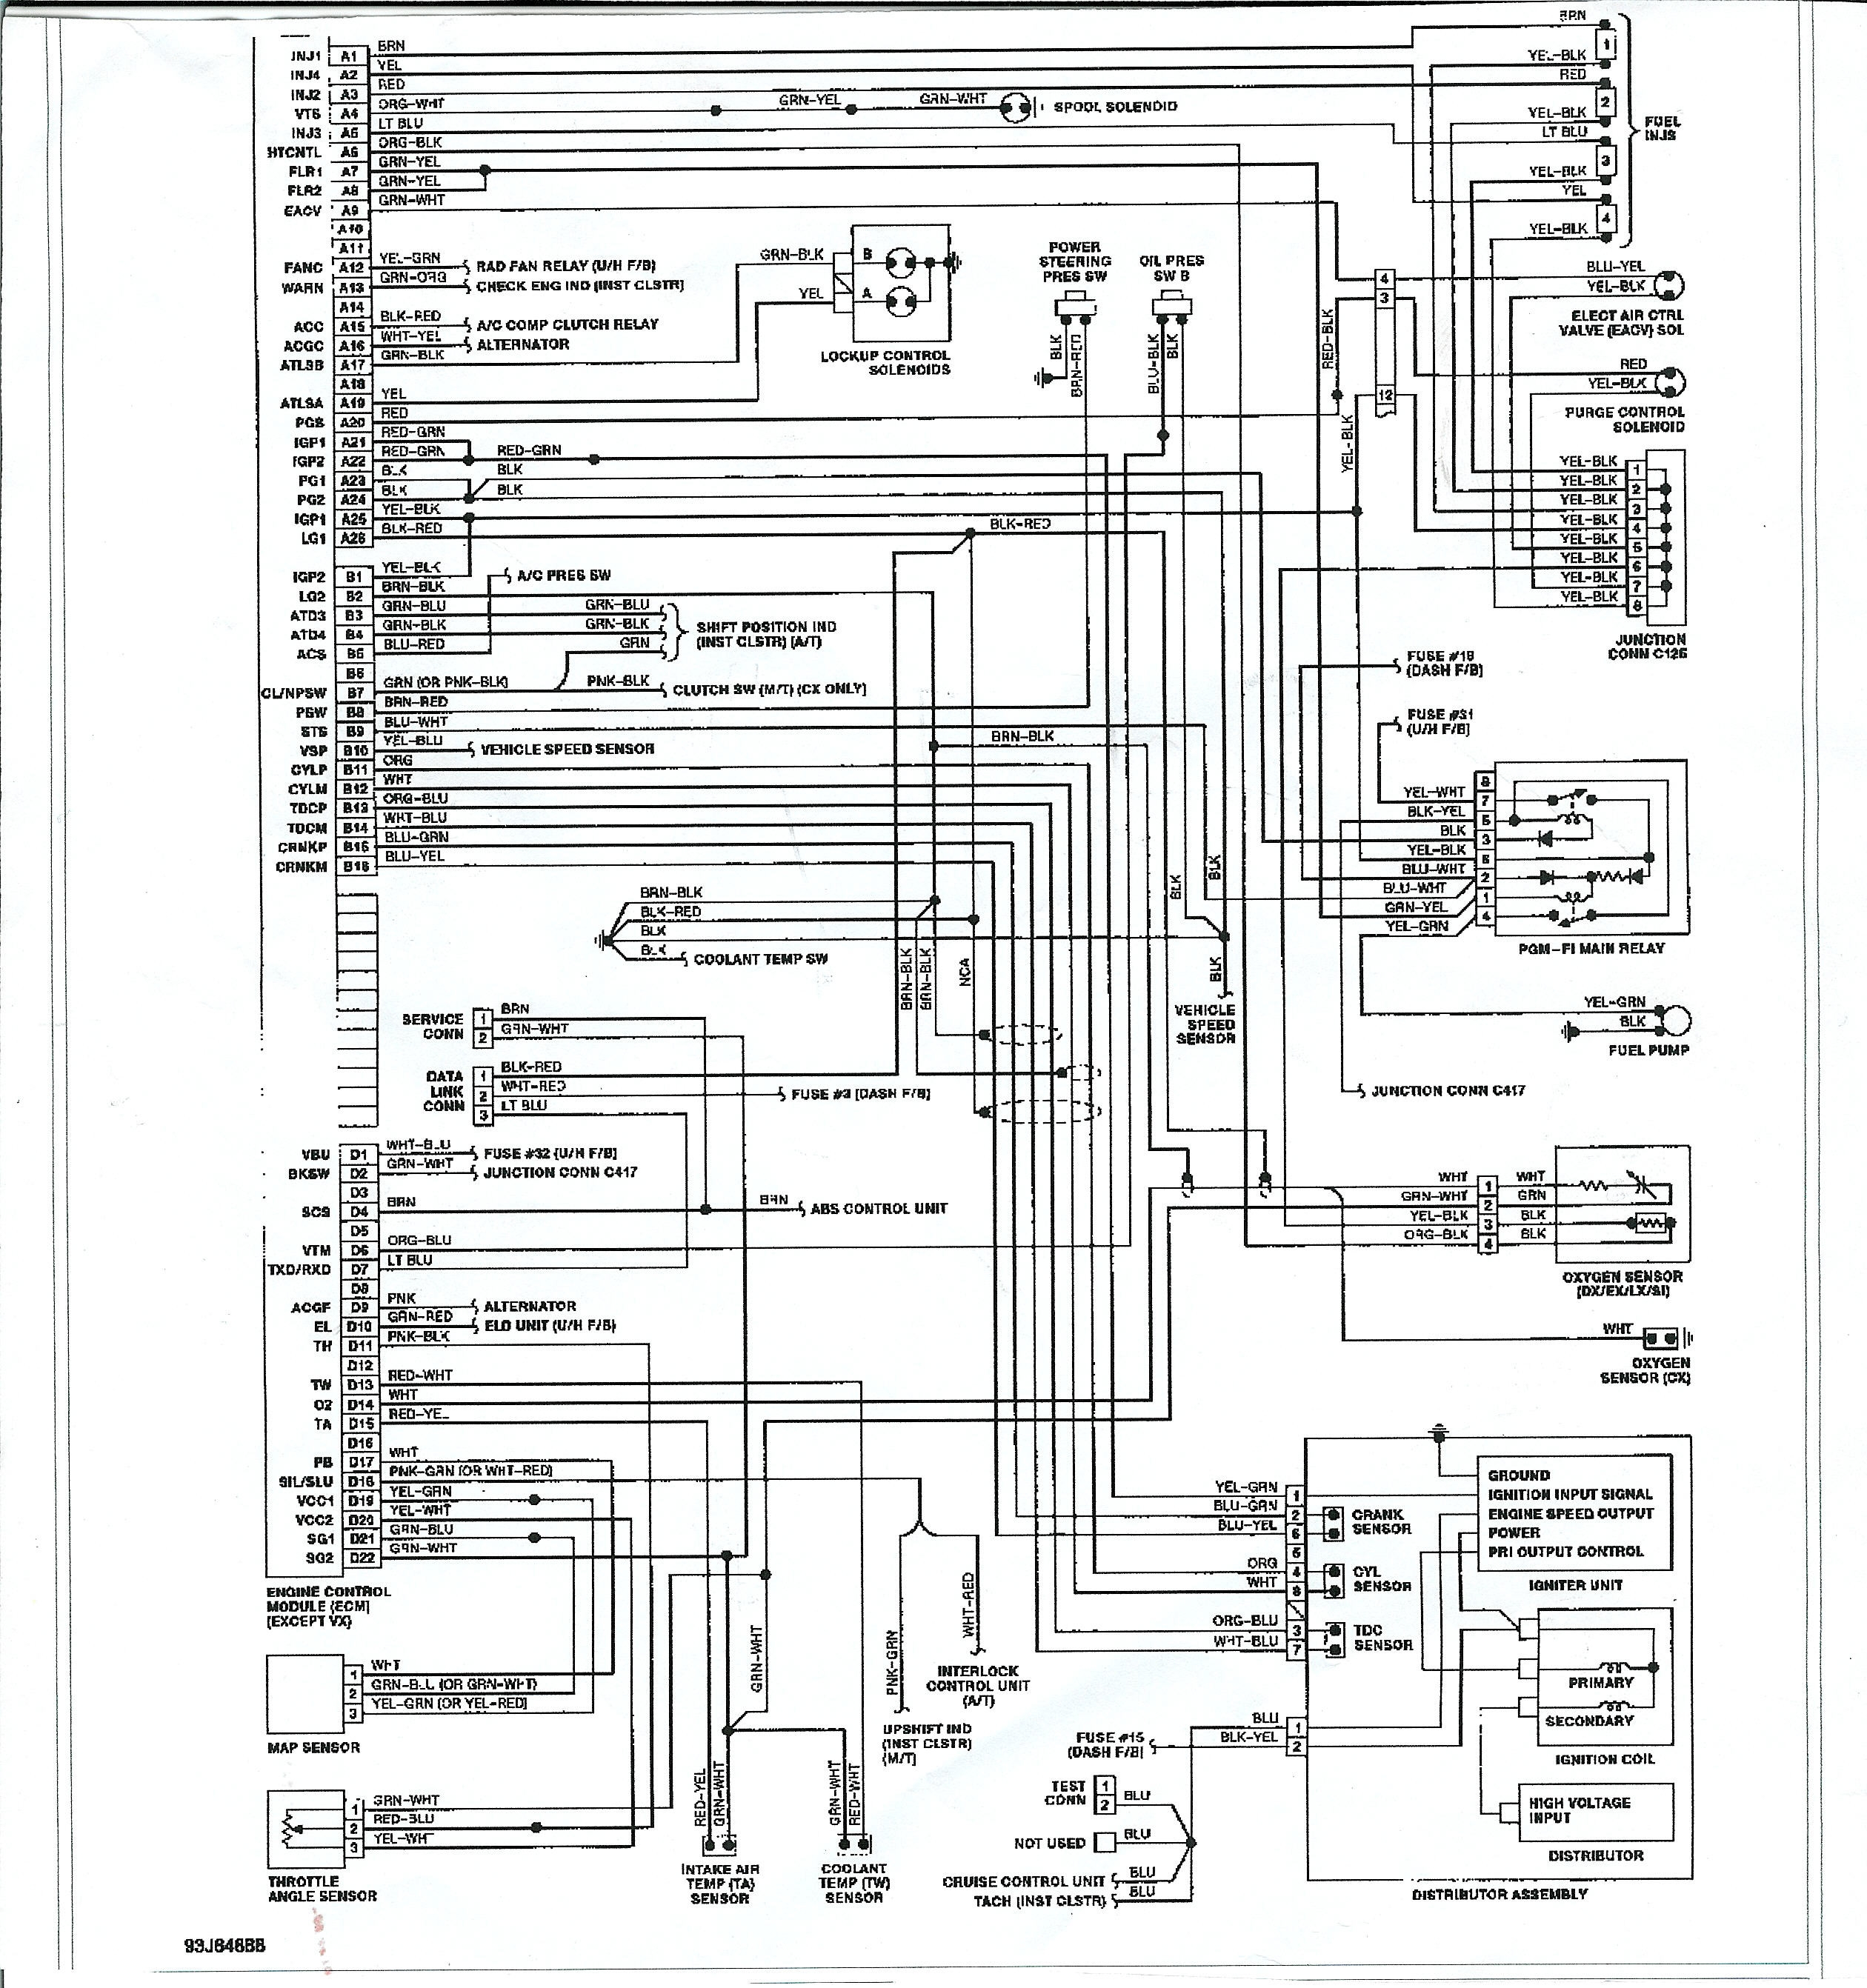 wiring diagram for 2000 honda accord 1991    honda    civic electrical    wiring       diagram    and schematics  1991    honda    civic electrical    wiring       diagram    and schematics